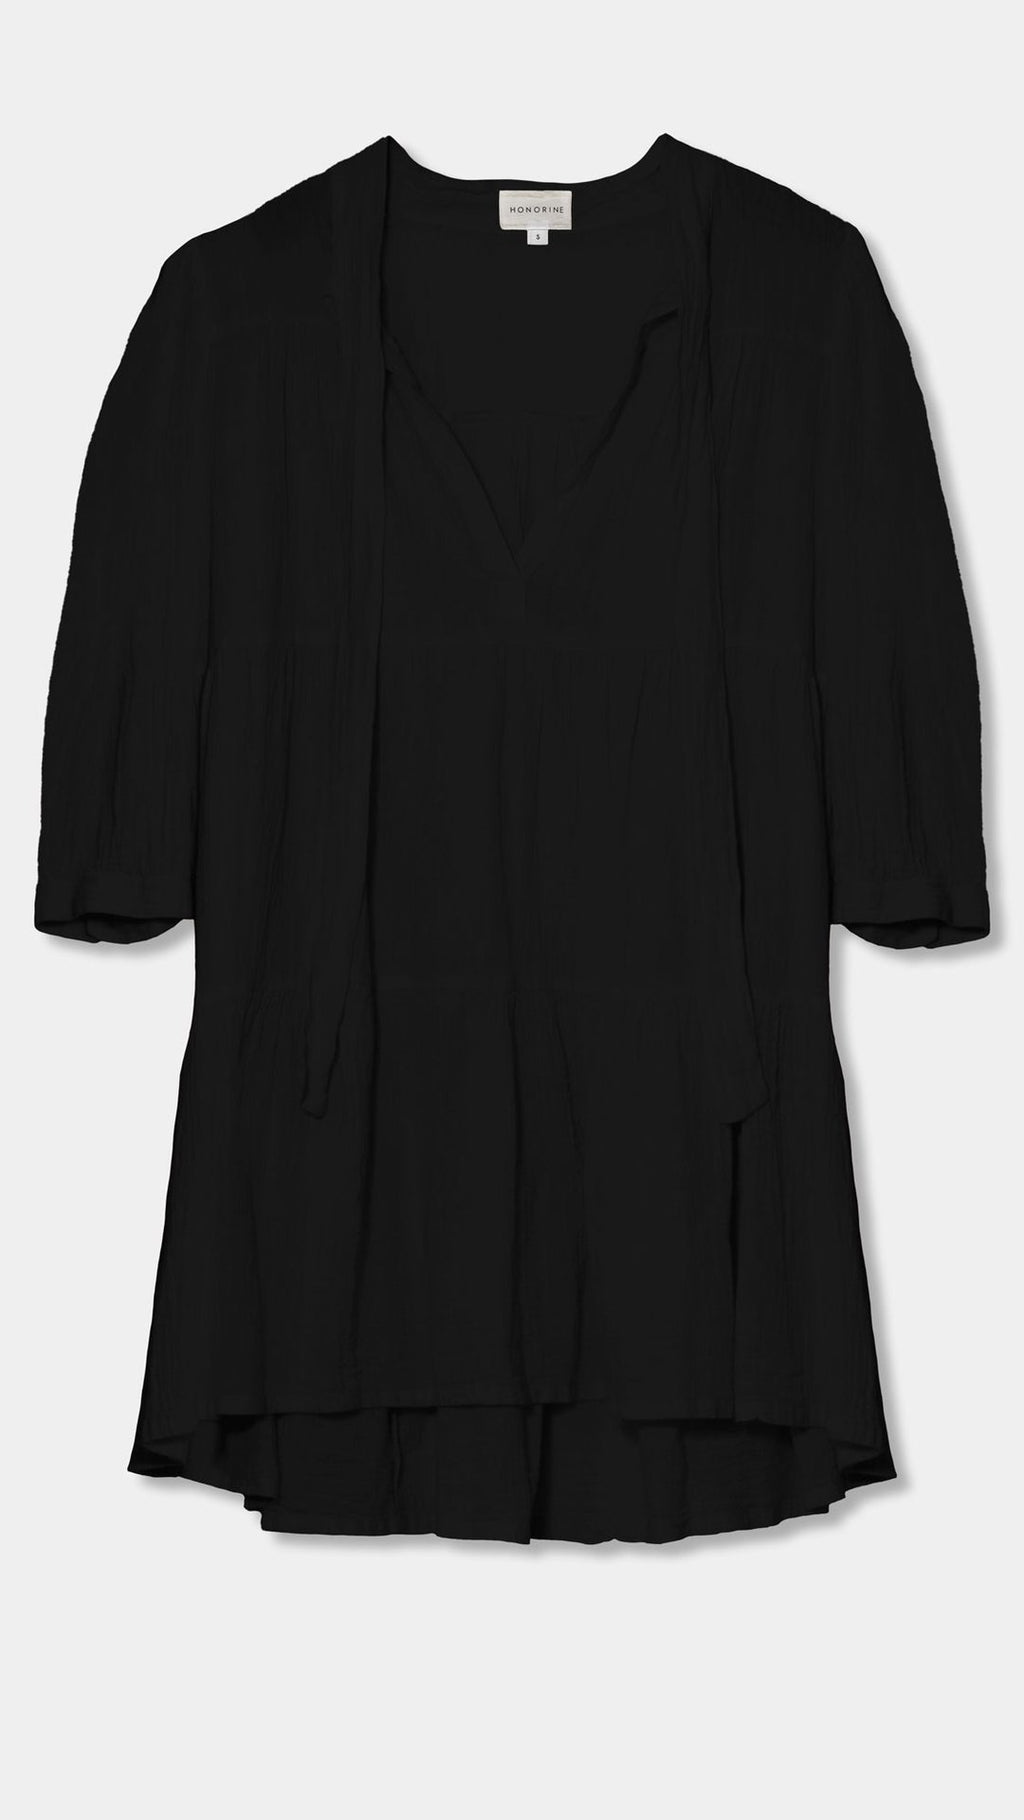 """Giselle"" Short Black Dress"